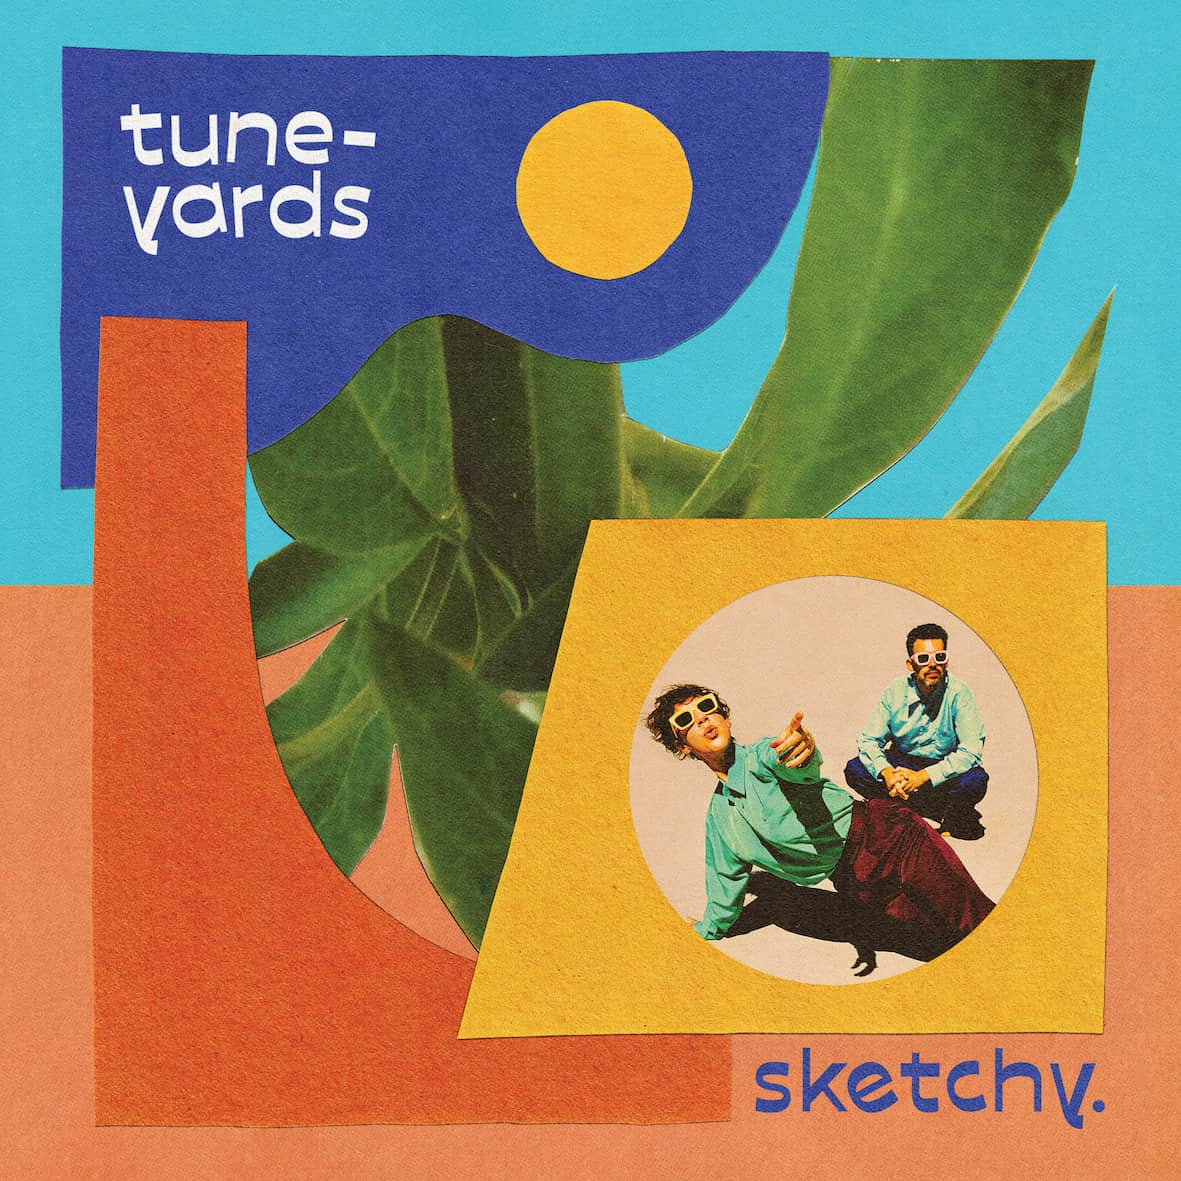 Tune-Yards - Sketchy Translucent Blue Colour Vinyl Record Album